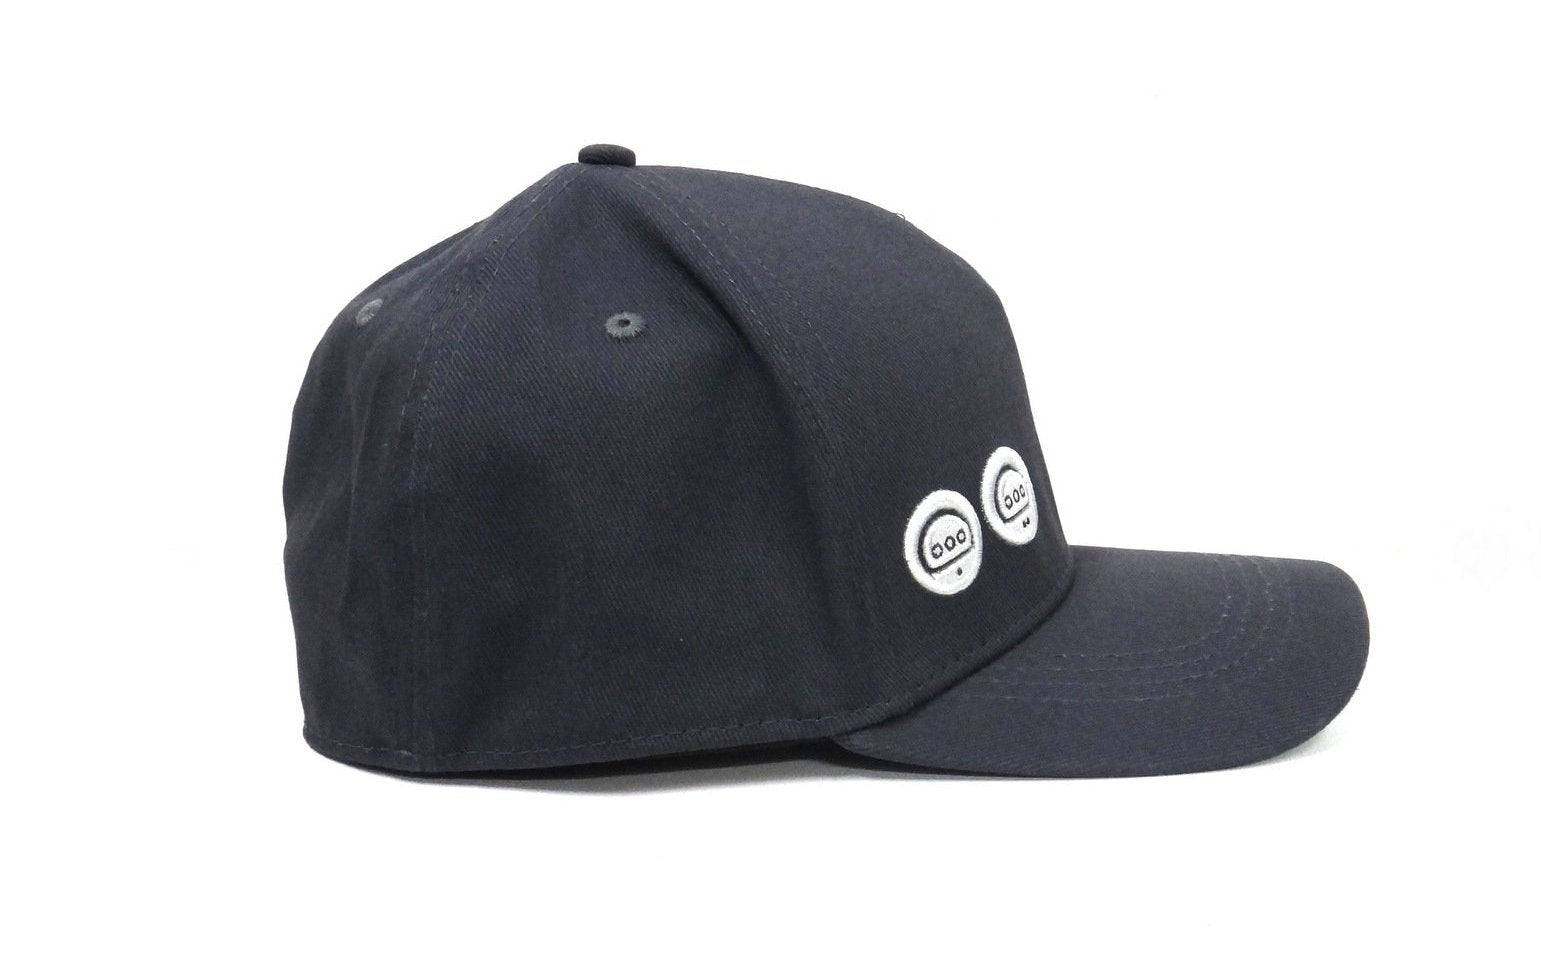 N64 Fitted Gaming Hat Charcoal Grey - Gamer Hats